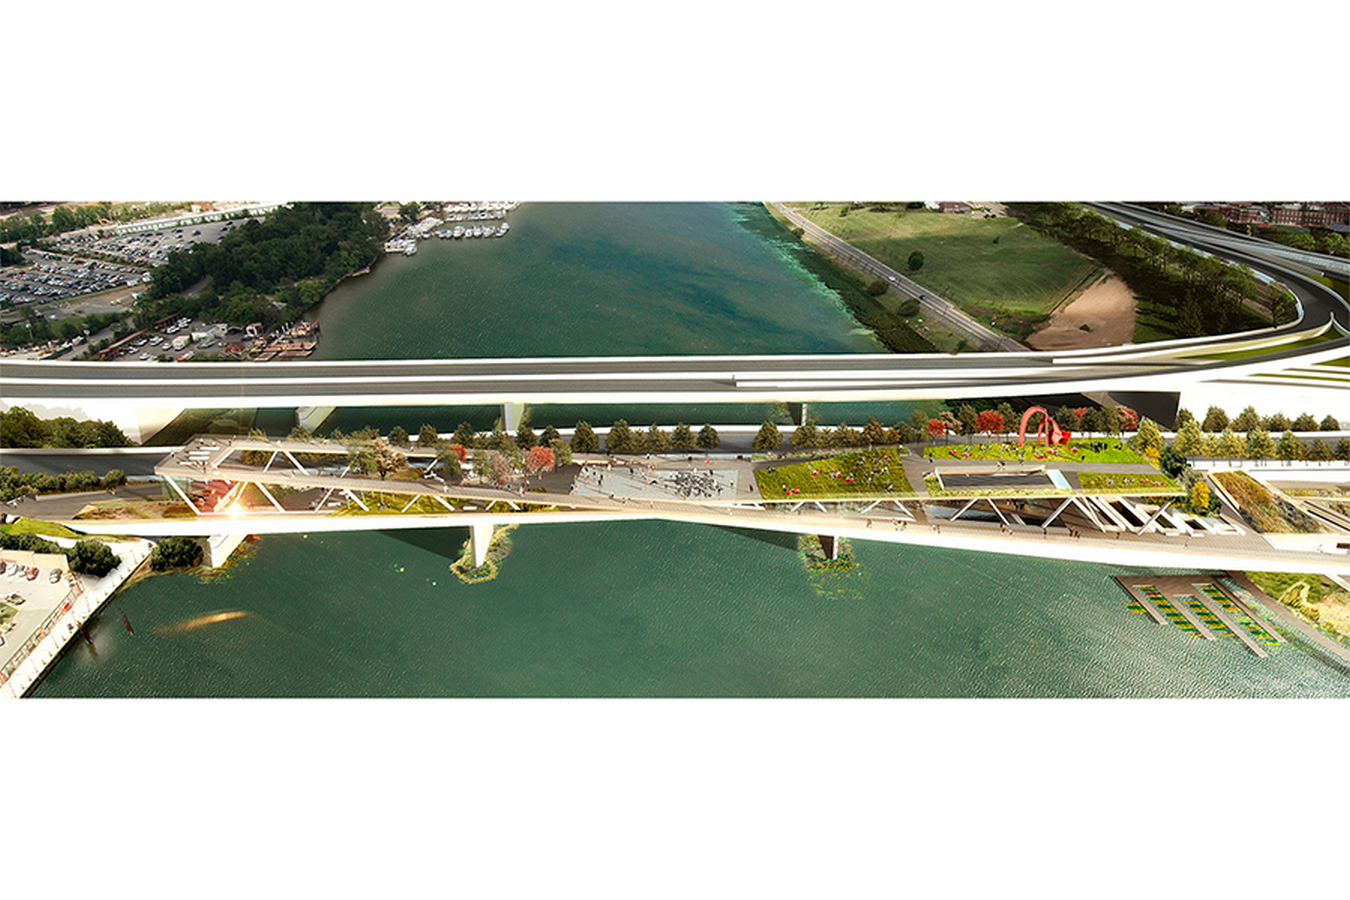 11th Street Bridge Park by Rem Koolhaas: Uniting the divided city - Sheet16